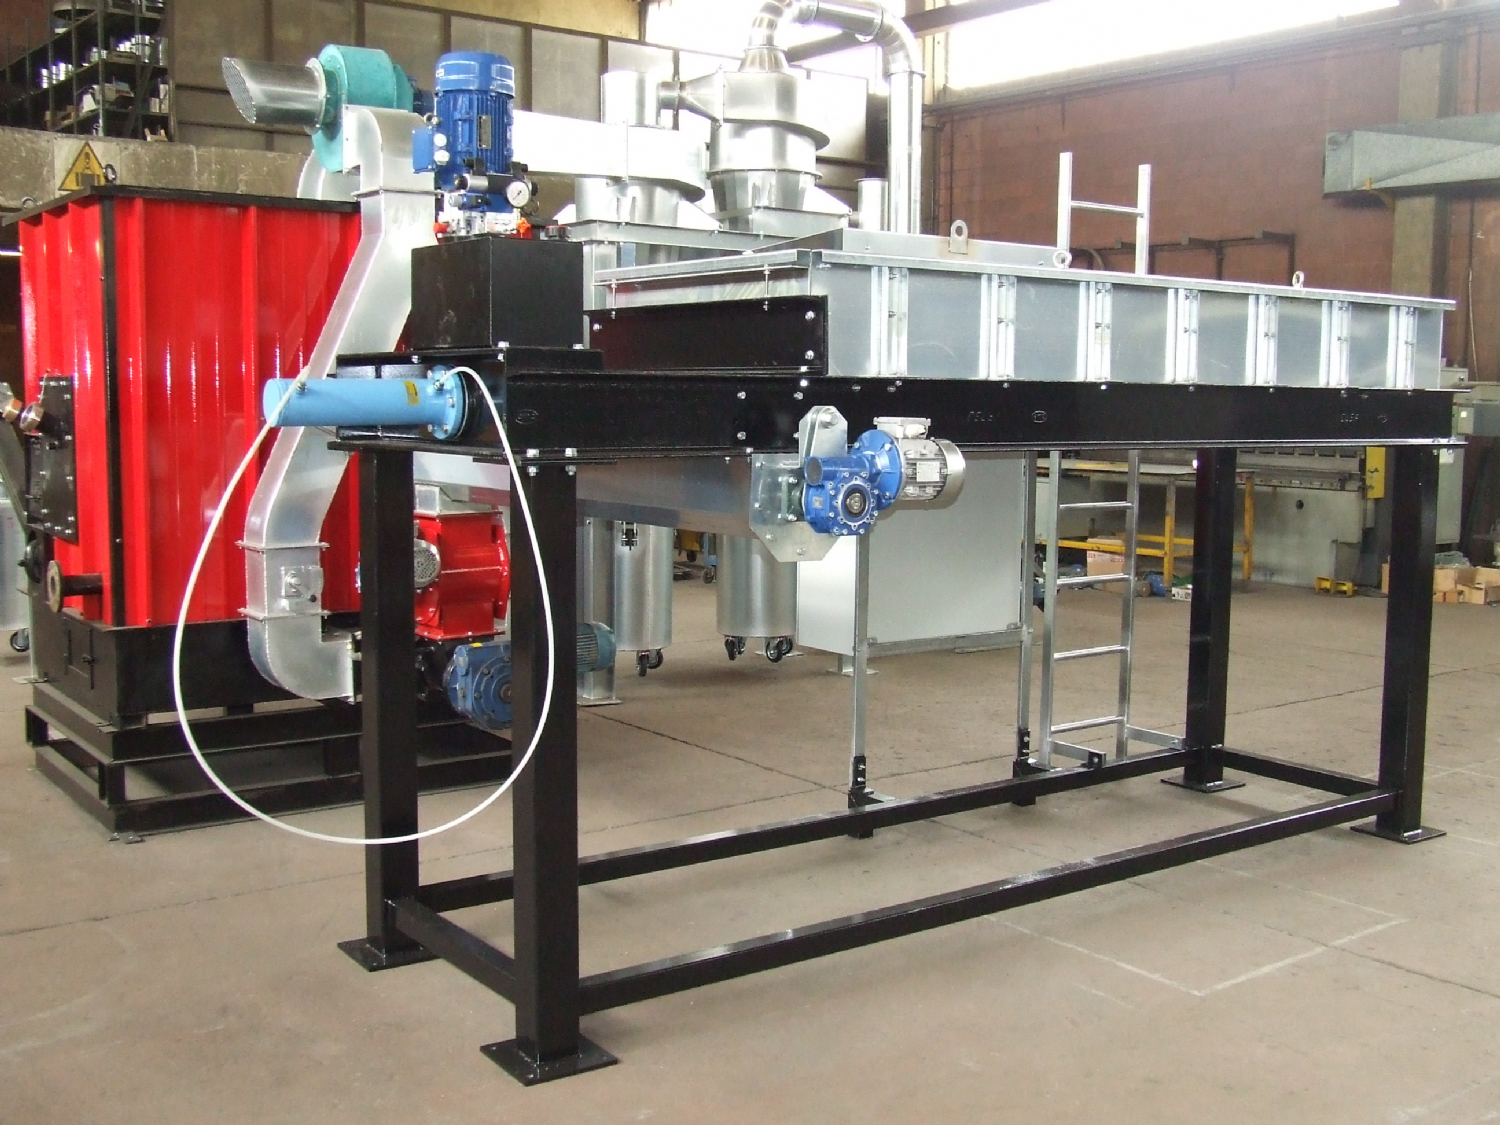 Realization of a pilot plant for combustion of biomass